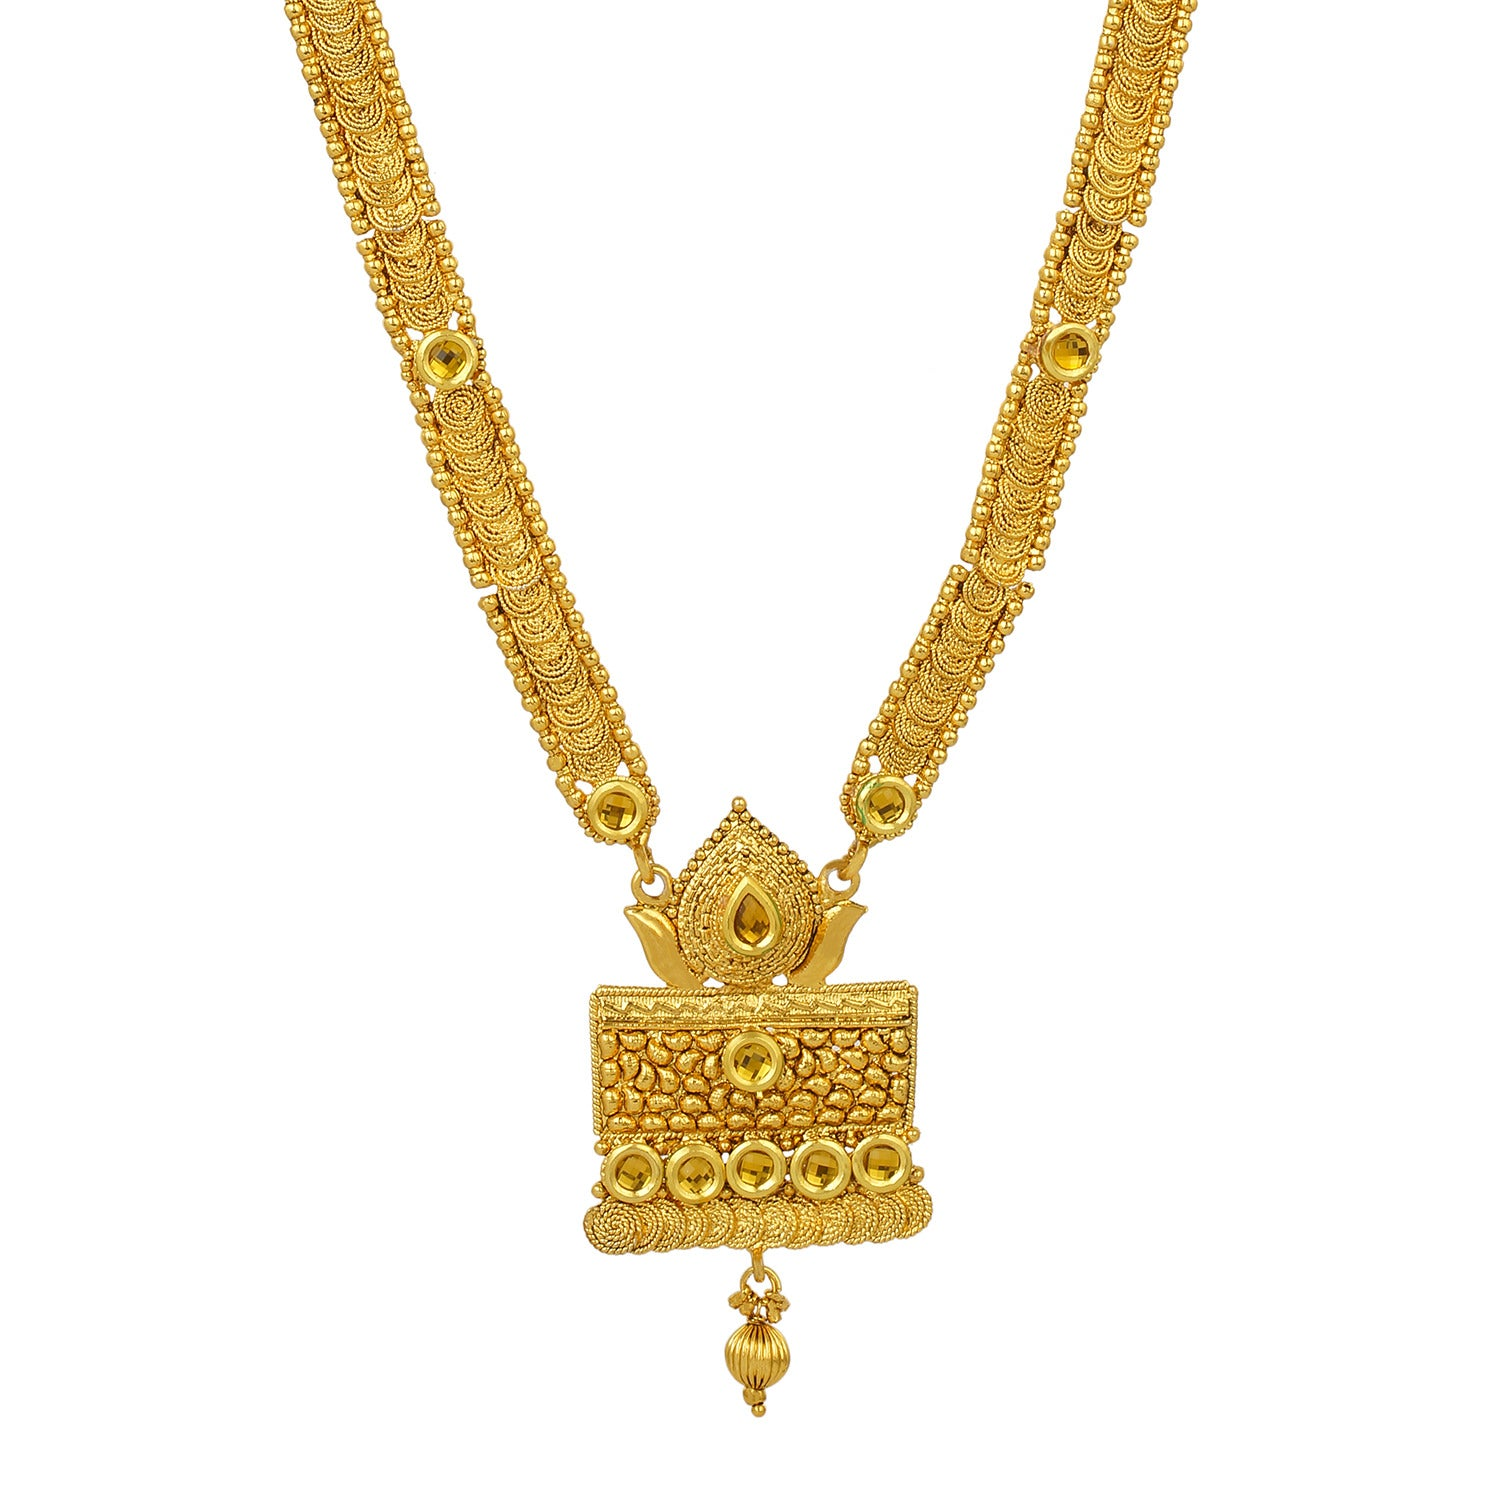 Gold Plated Traditional Long Kundan Necklace and Jhumki Earrings Fashion Jewelry Set for Women and Girls